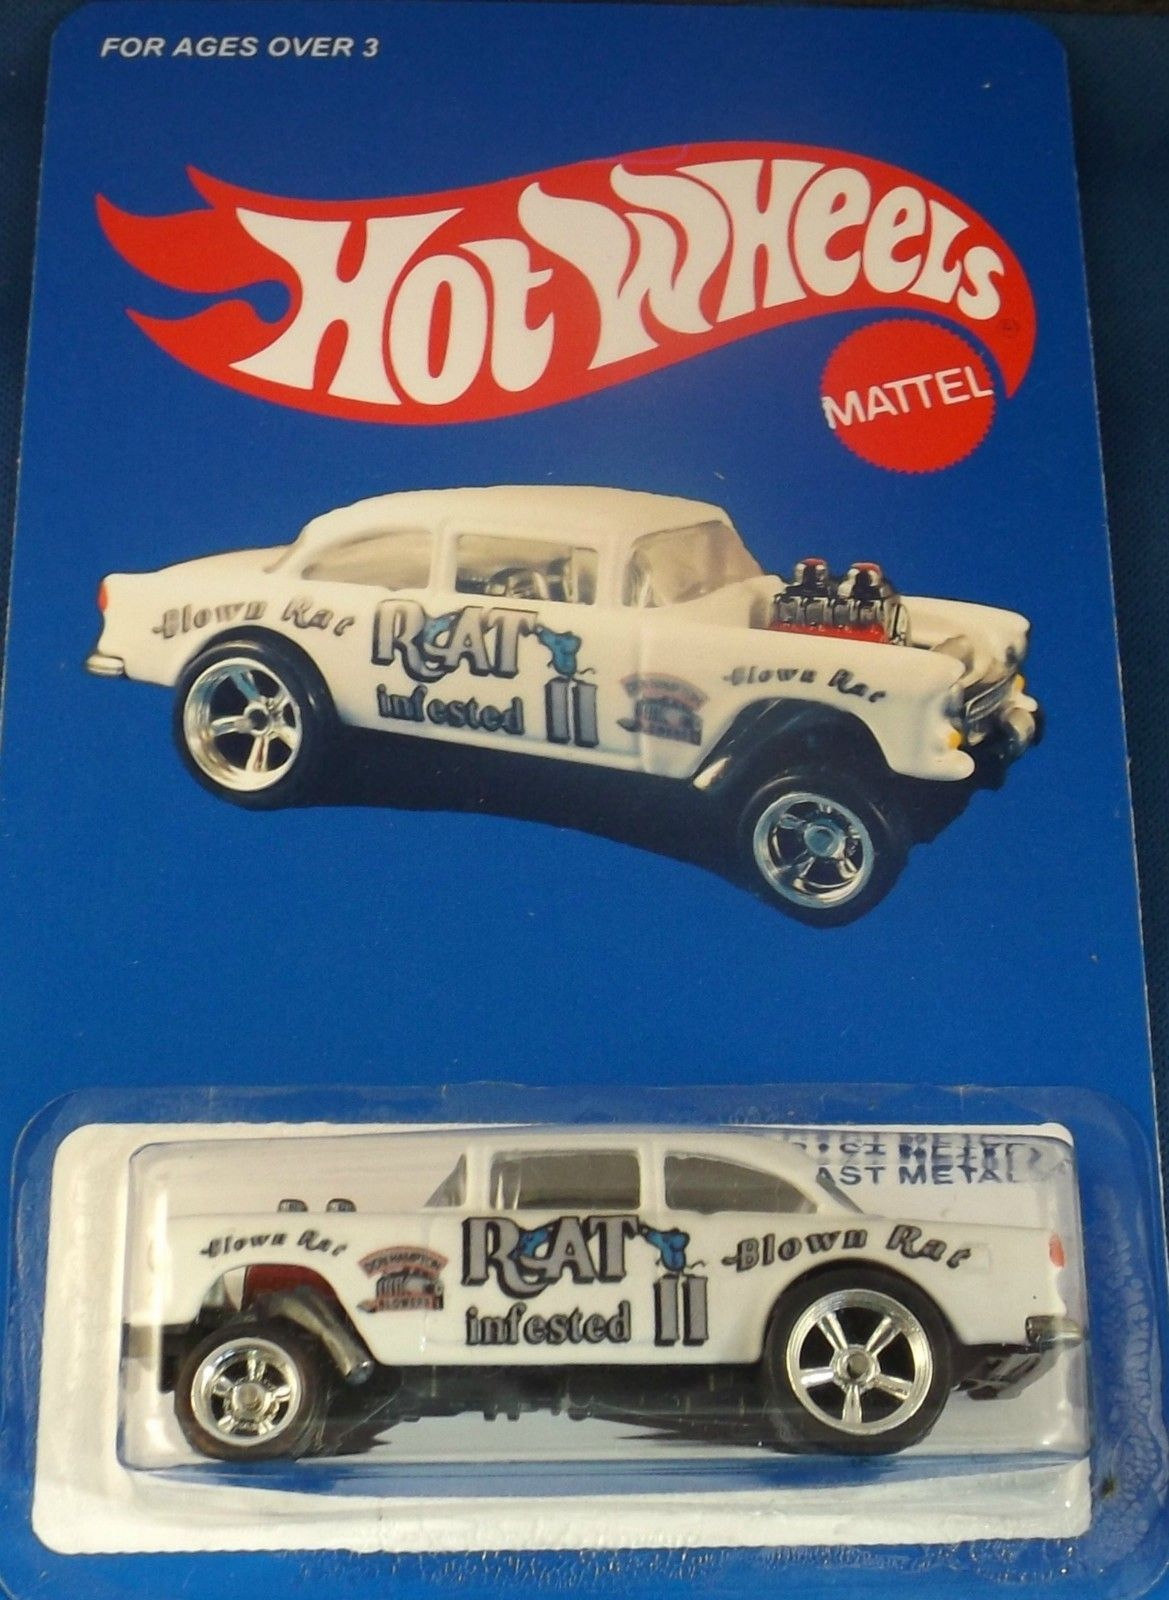 1956 chevy bel air dynomite classic muscle car for sale in - 2013 Hot Wheels 55 Chevy Rat Infested Ii Gasser Matchbox Carsslot Carsbel Airdiecasthot